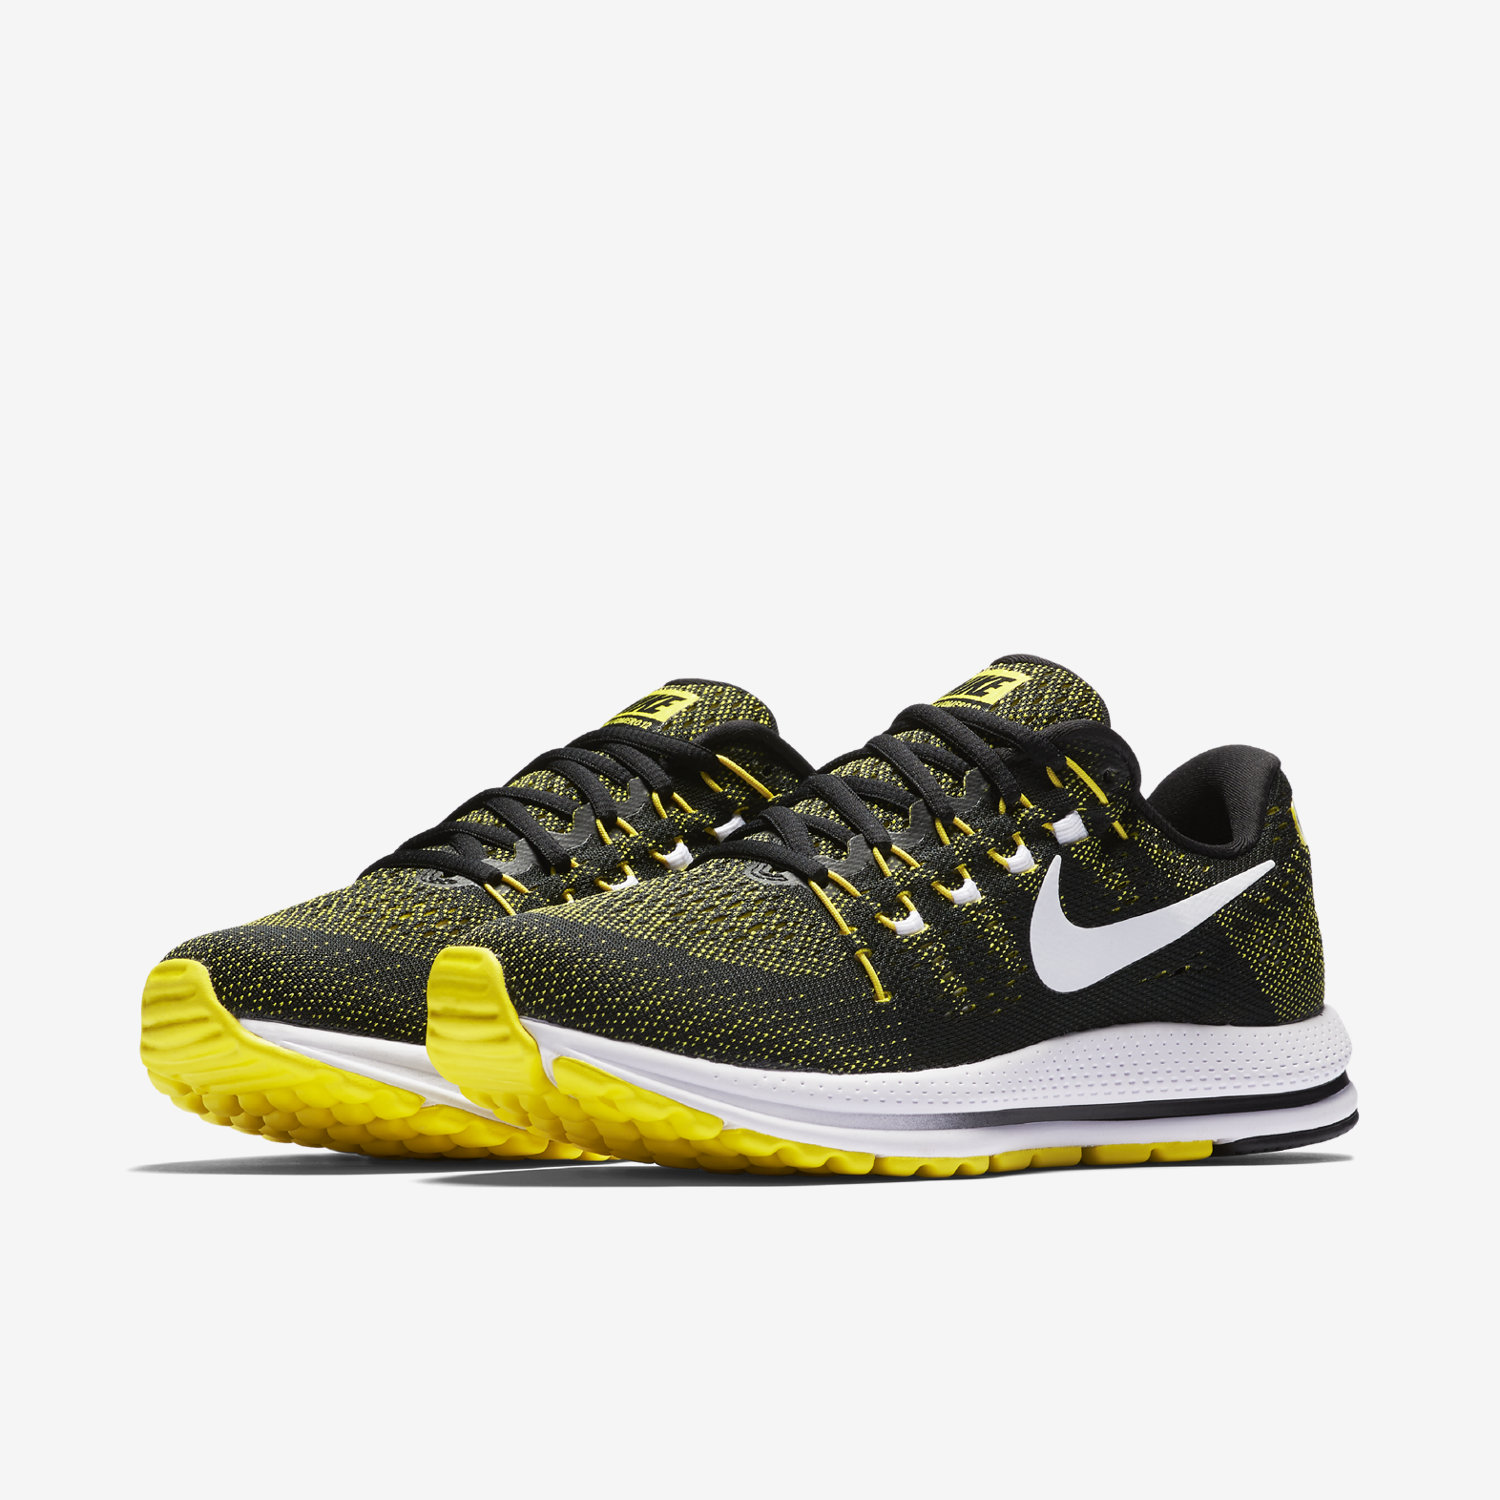 Nike Newport Shoes For Sale